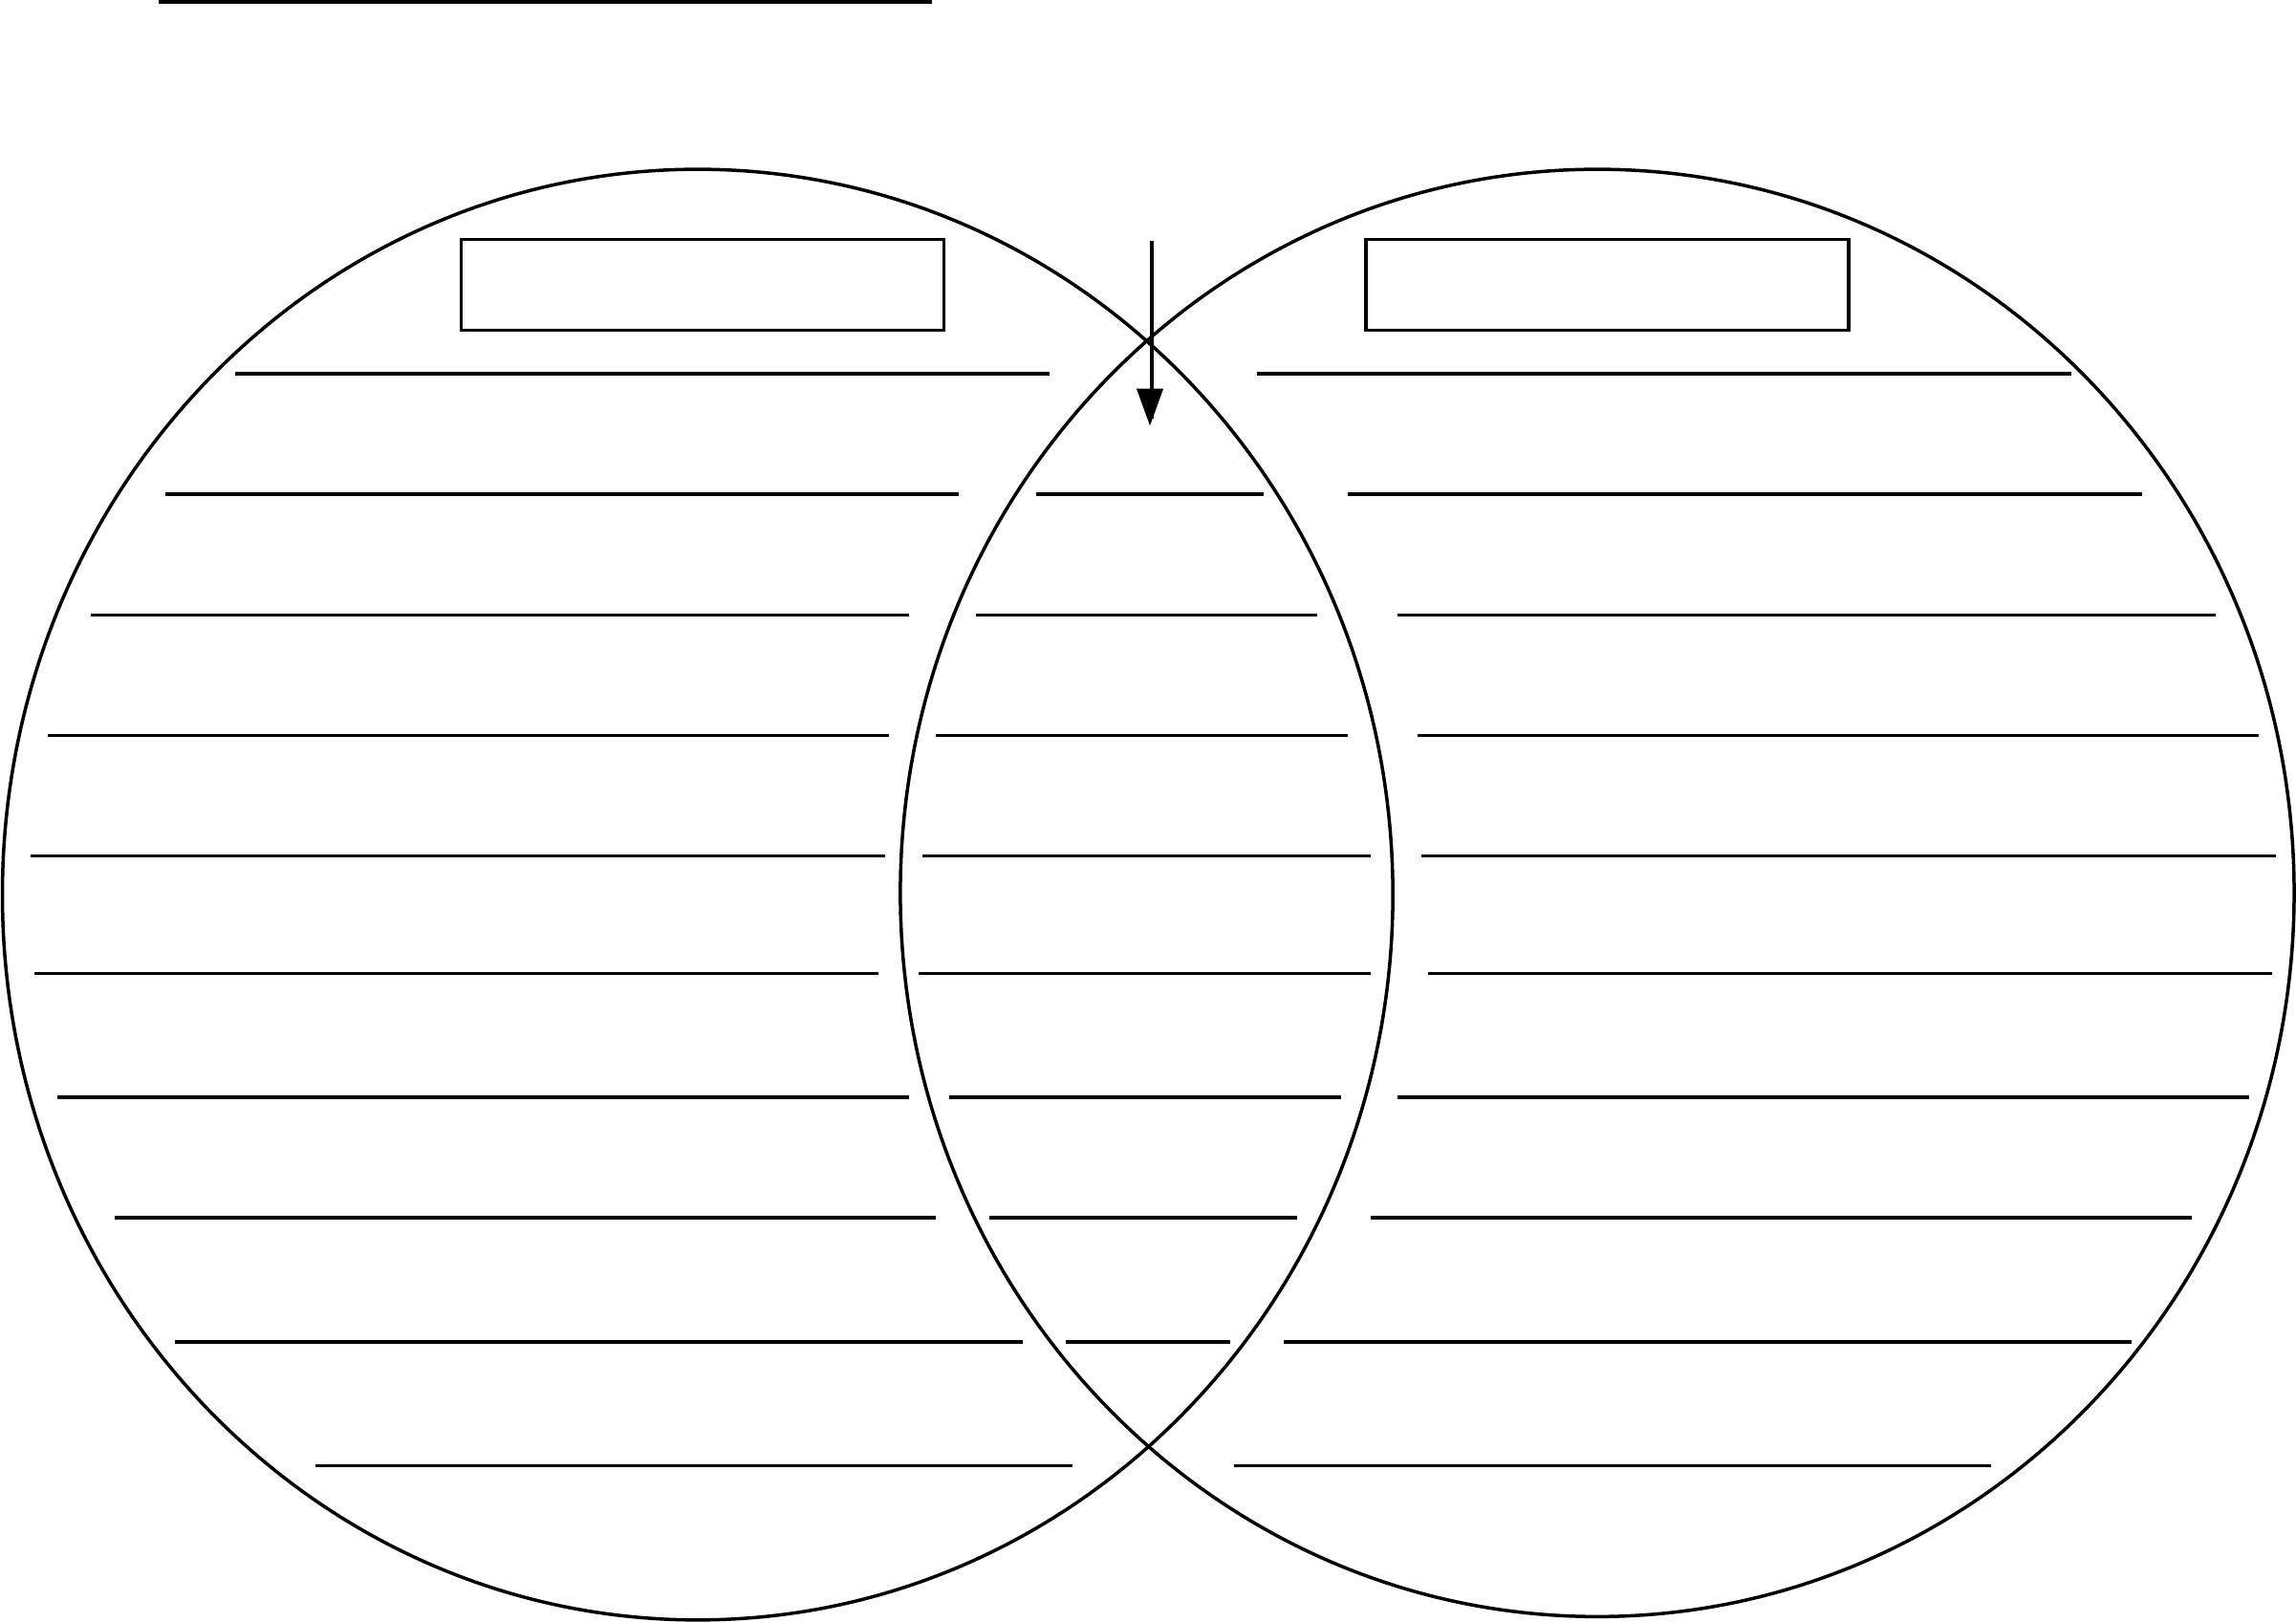 venn diagram template  character  free downloadvenn diagram  character